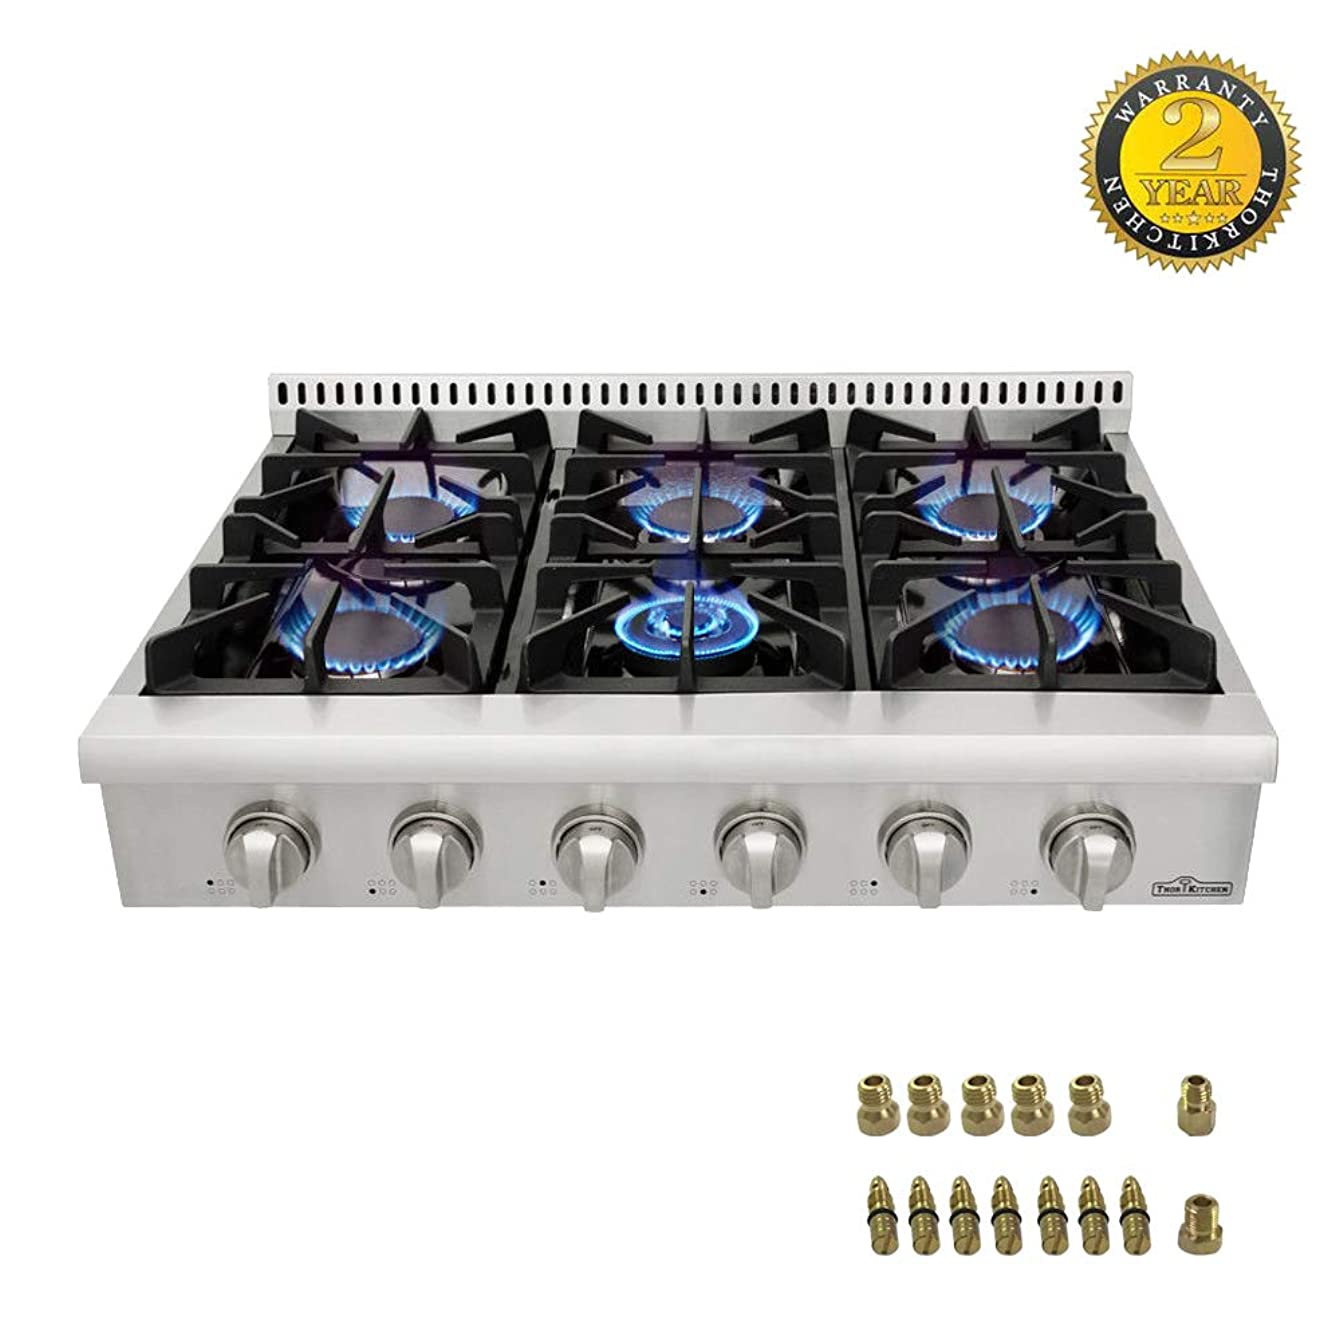 Thor kitchen Pro-Style Gas Rangetop with 6 Sealed Burners 36 - Inch, Stainless Steel HRT3618U + LP Conversion Kit